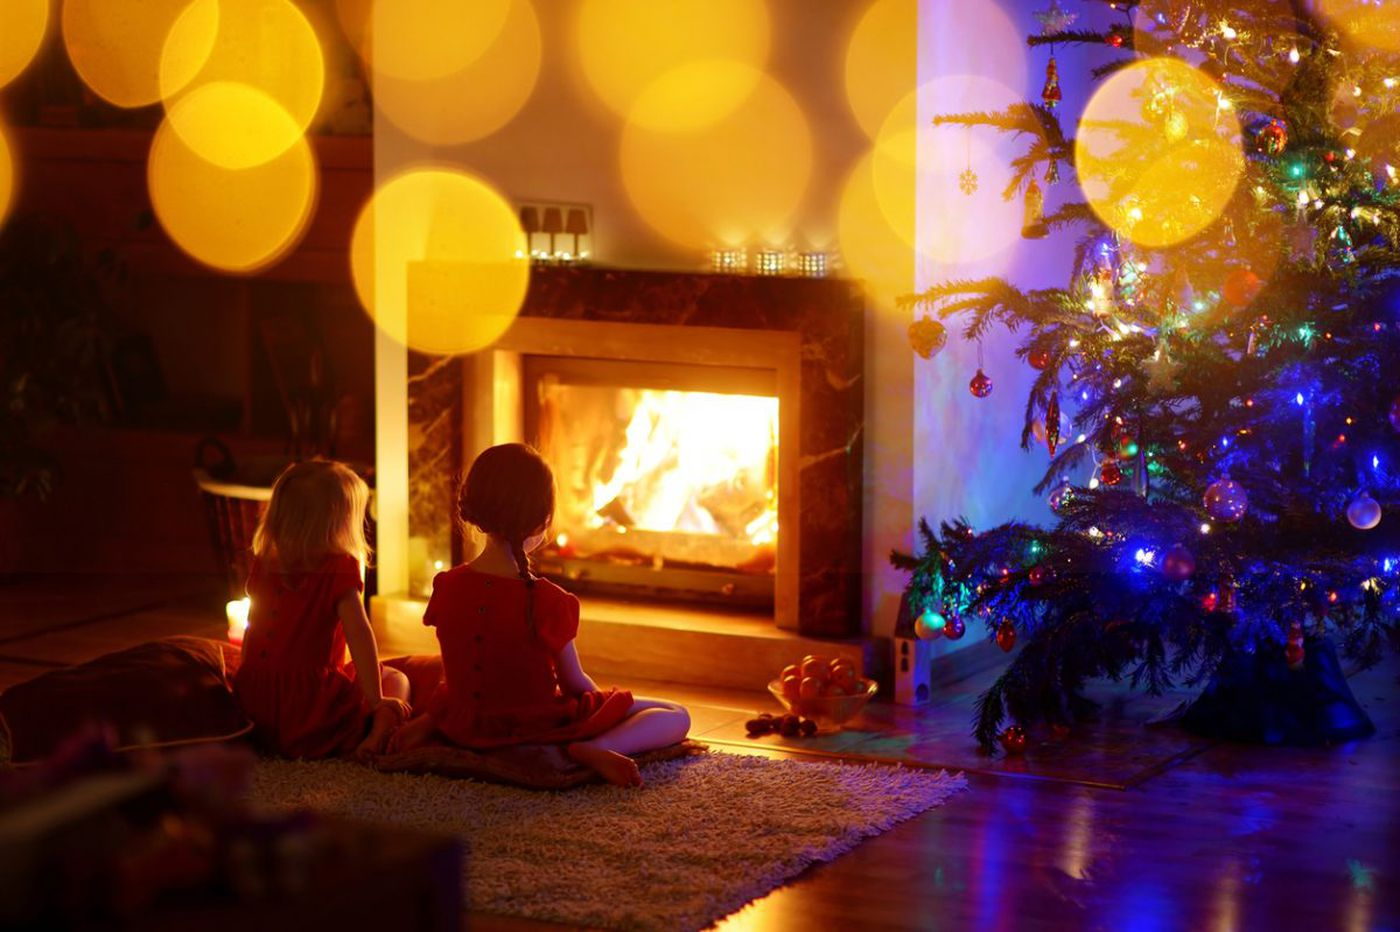 Tips for preventing winter burns and fires